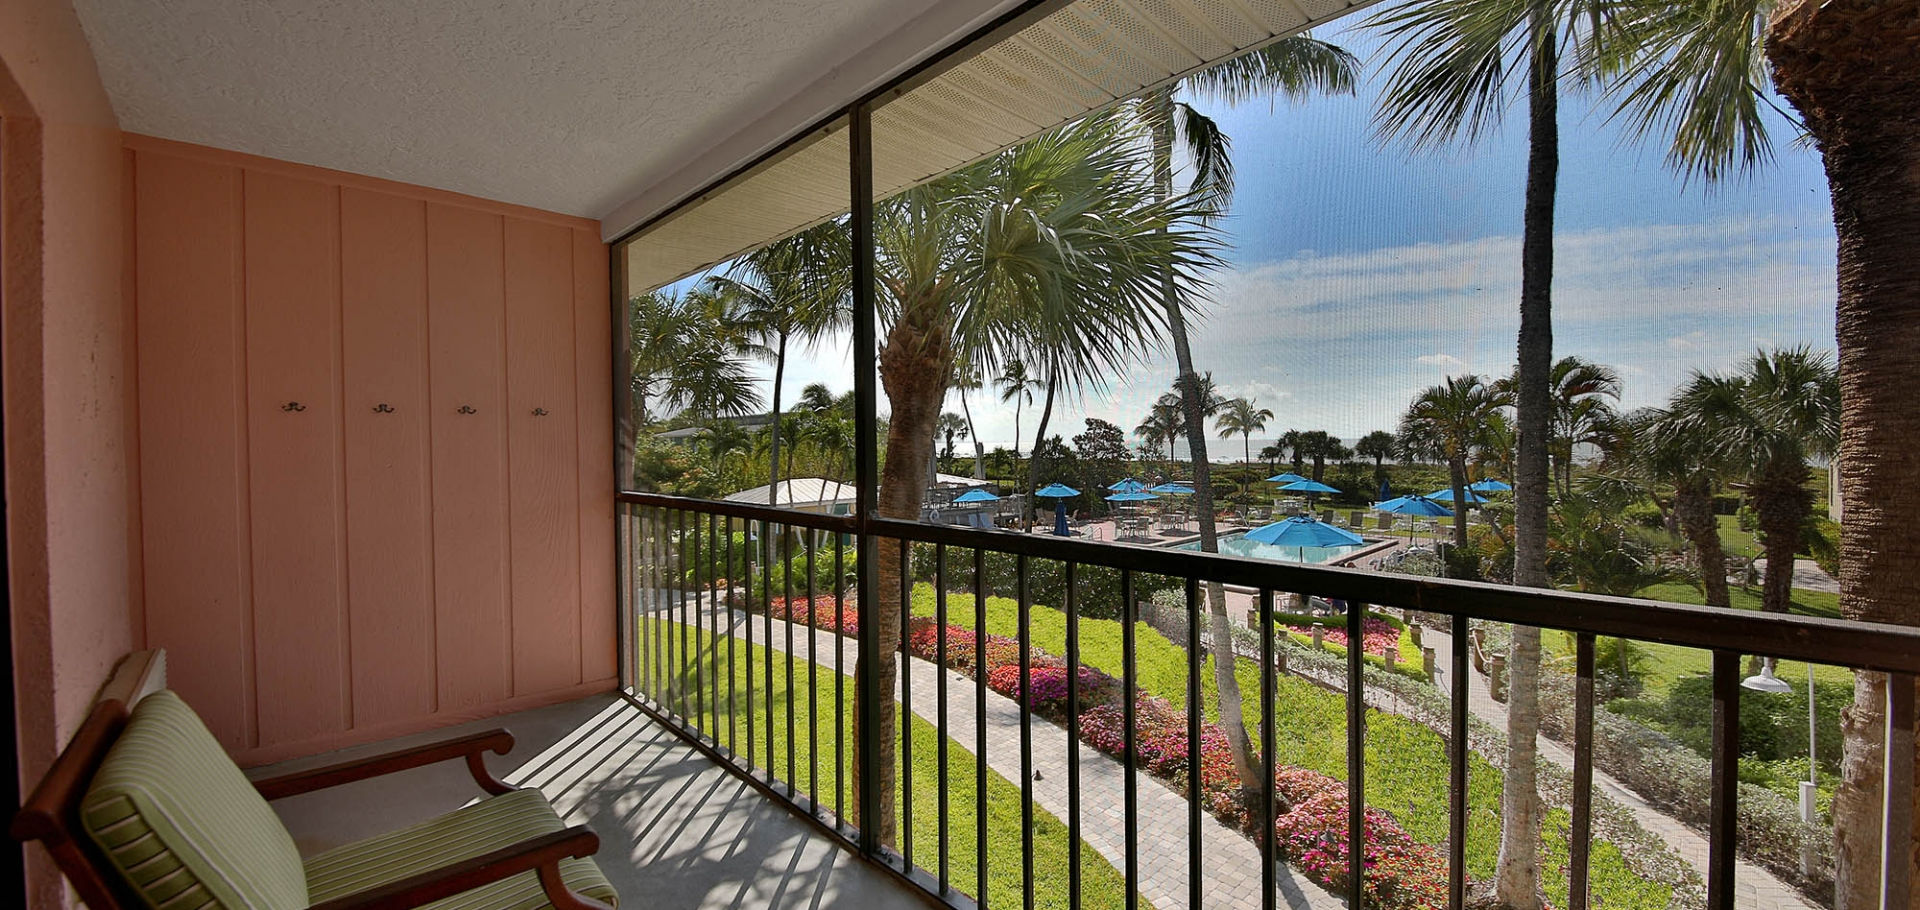 Sanibel Inn balcony views